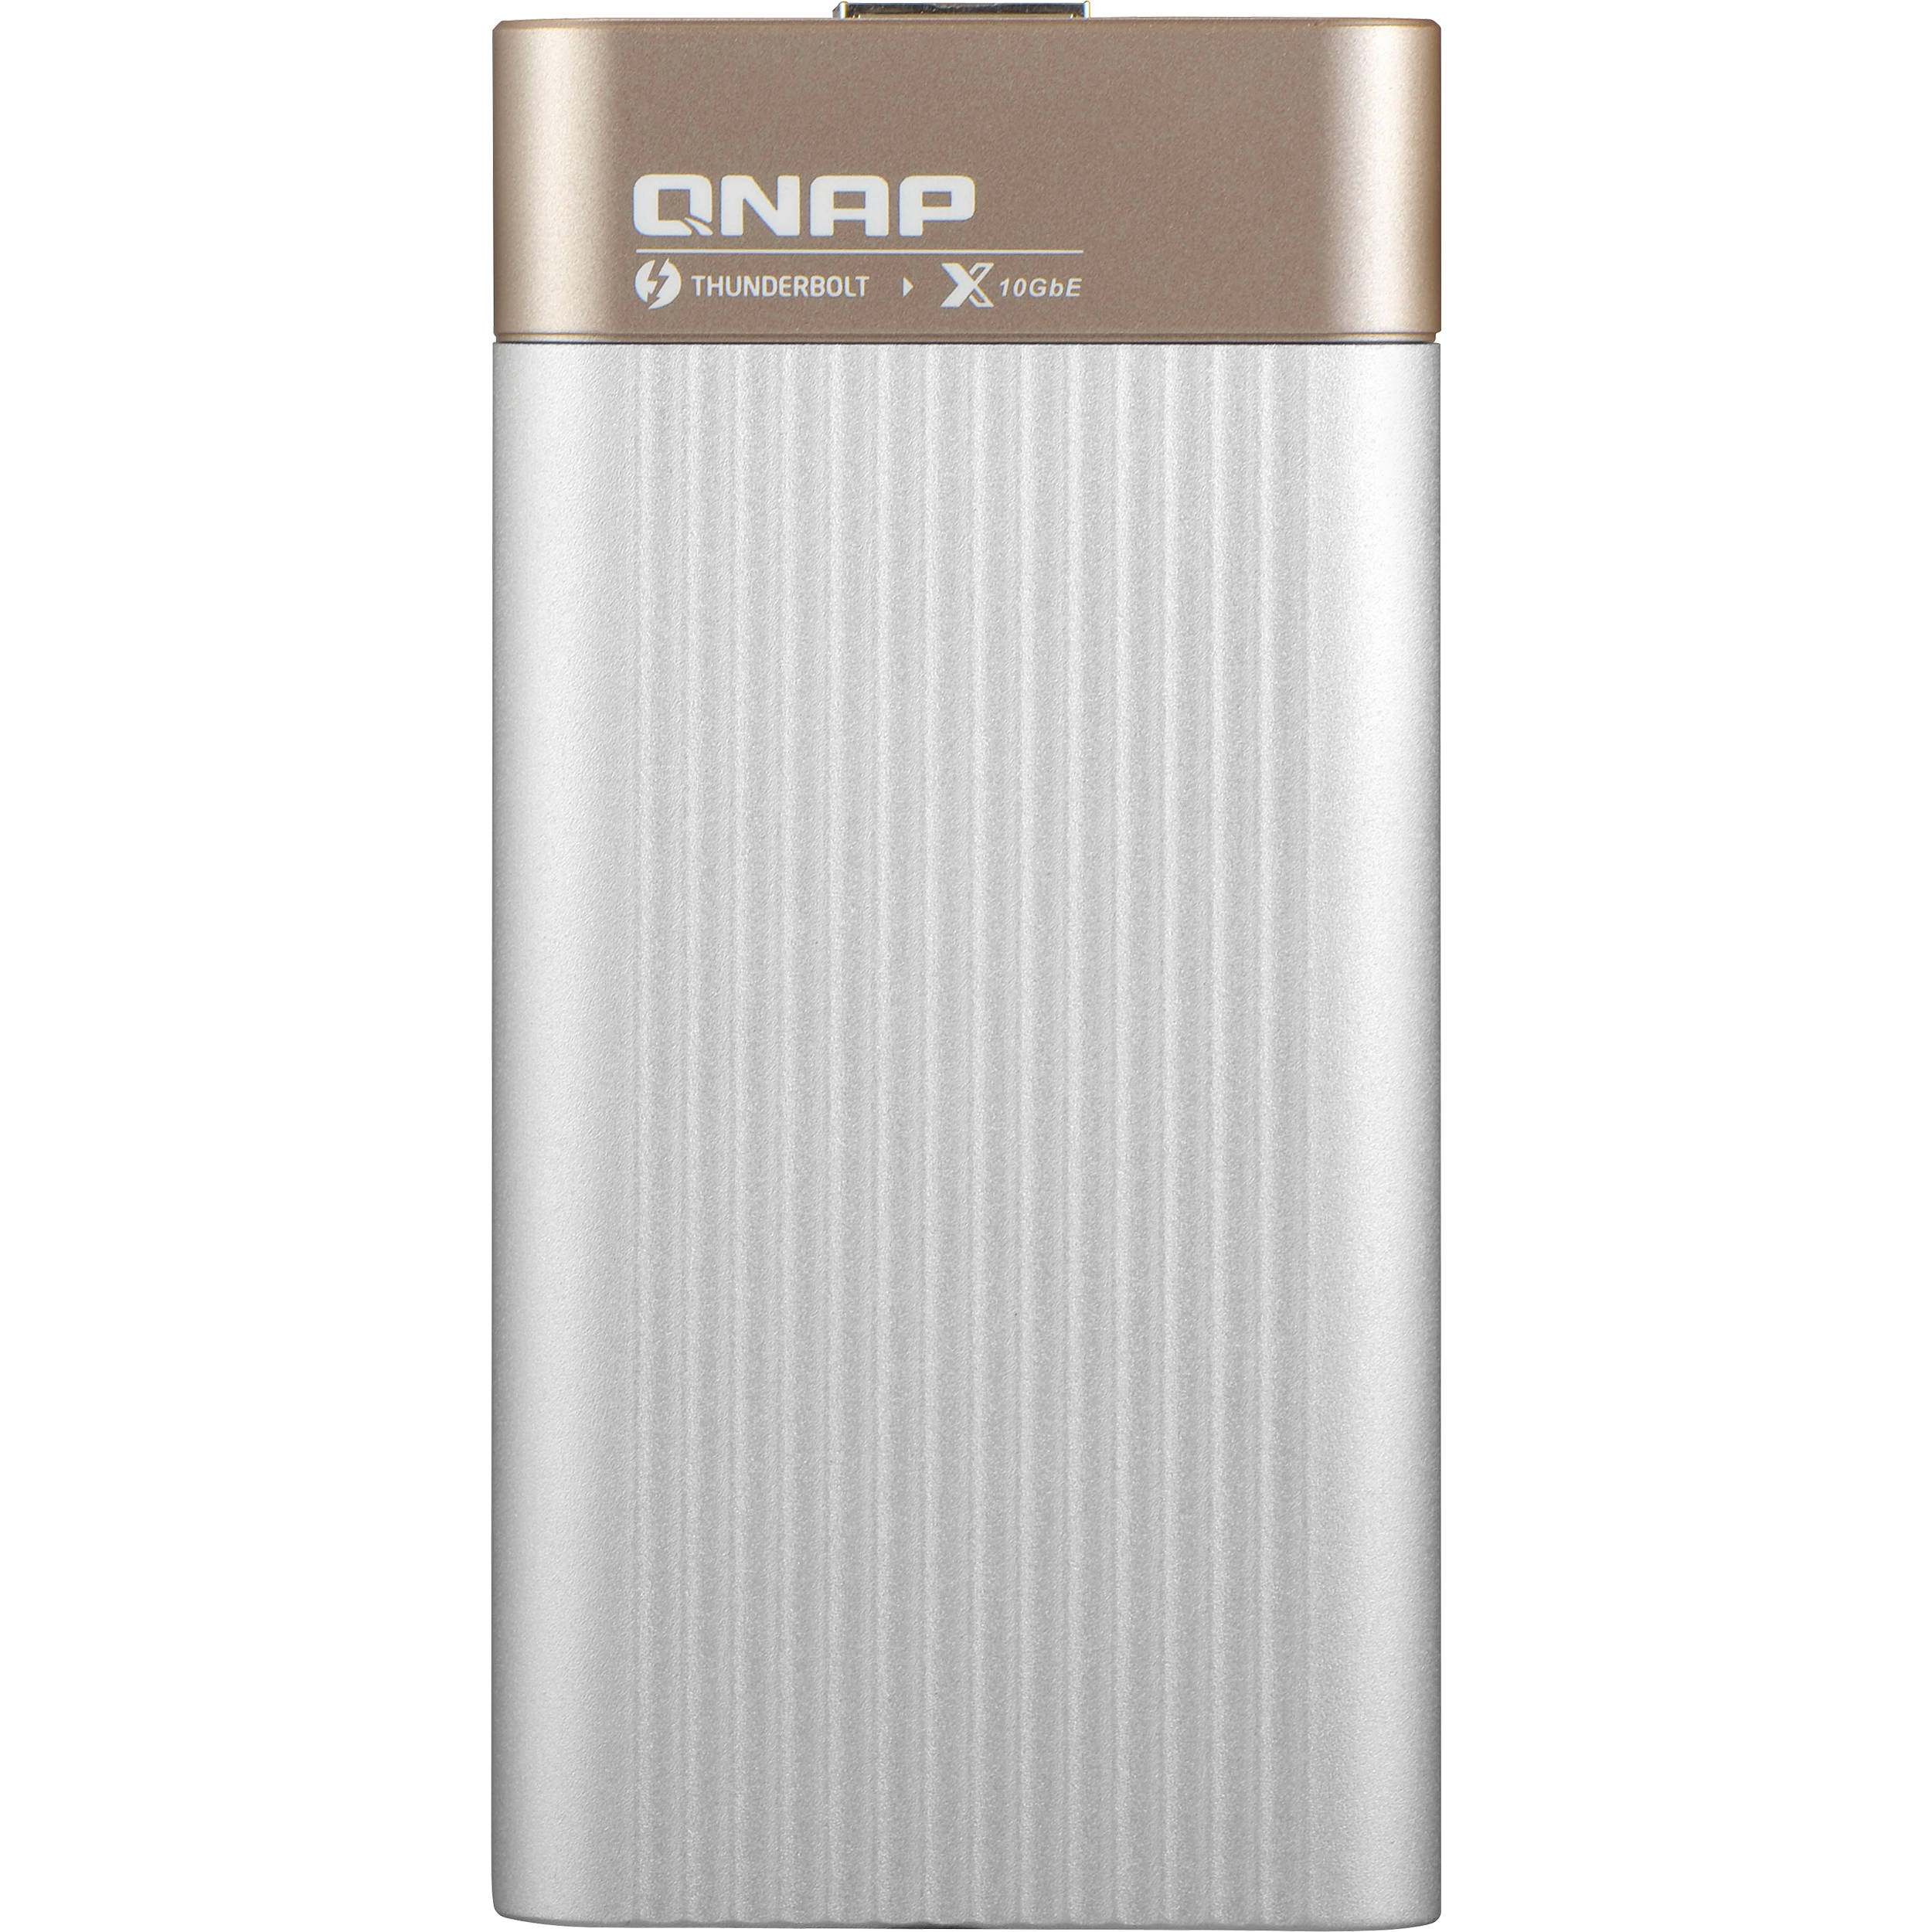 QNAP Thunderbolt 3 to 10 Gb/s SFP+ Adapter (QNA Series)